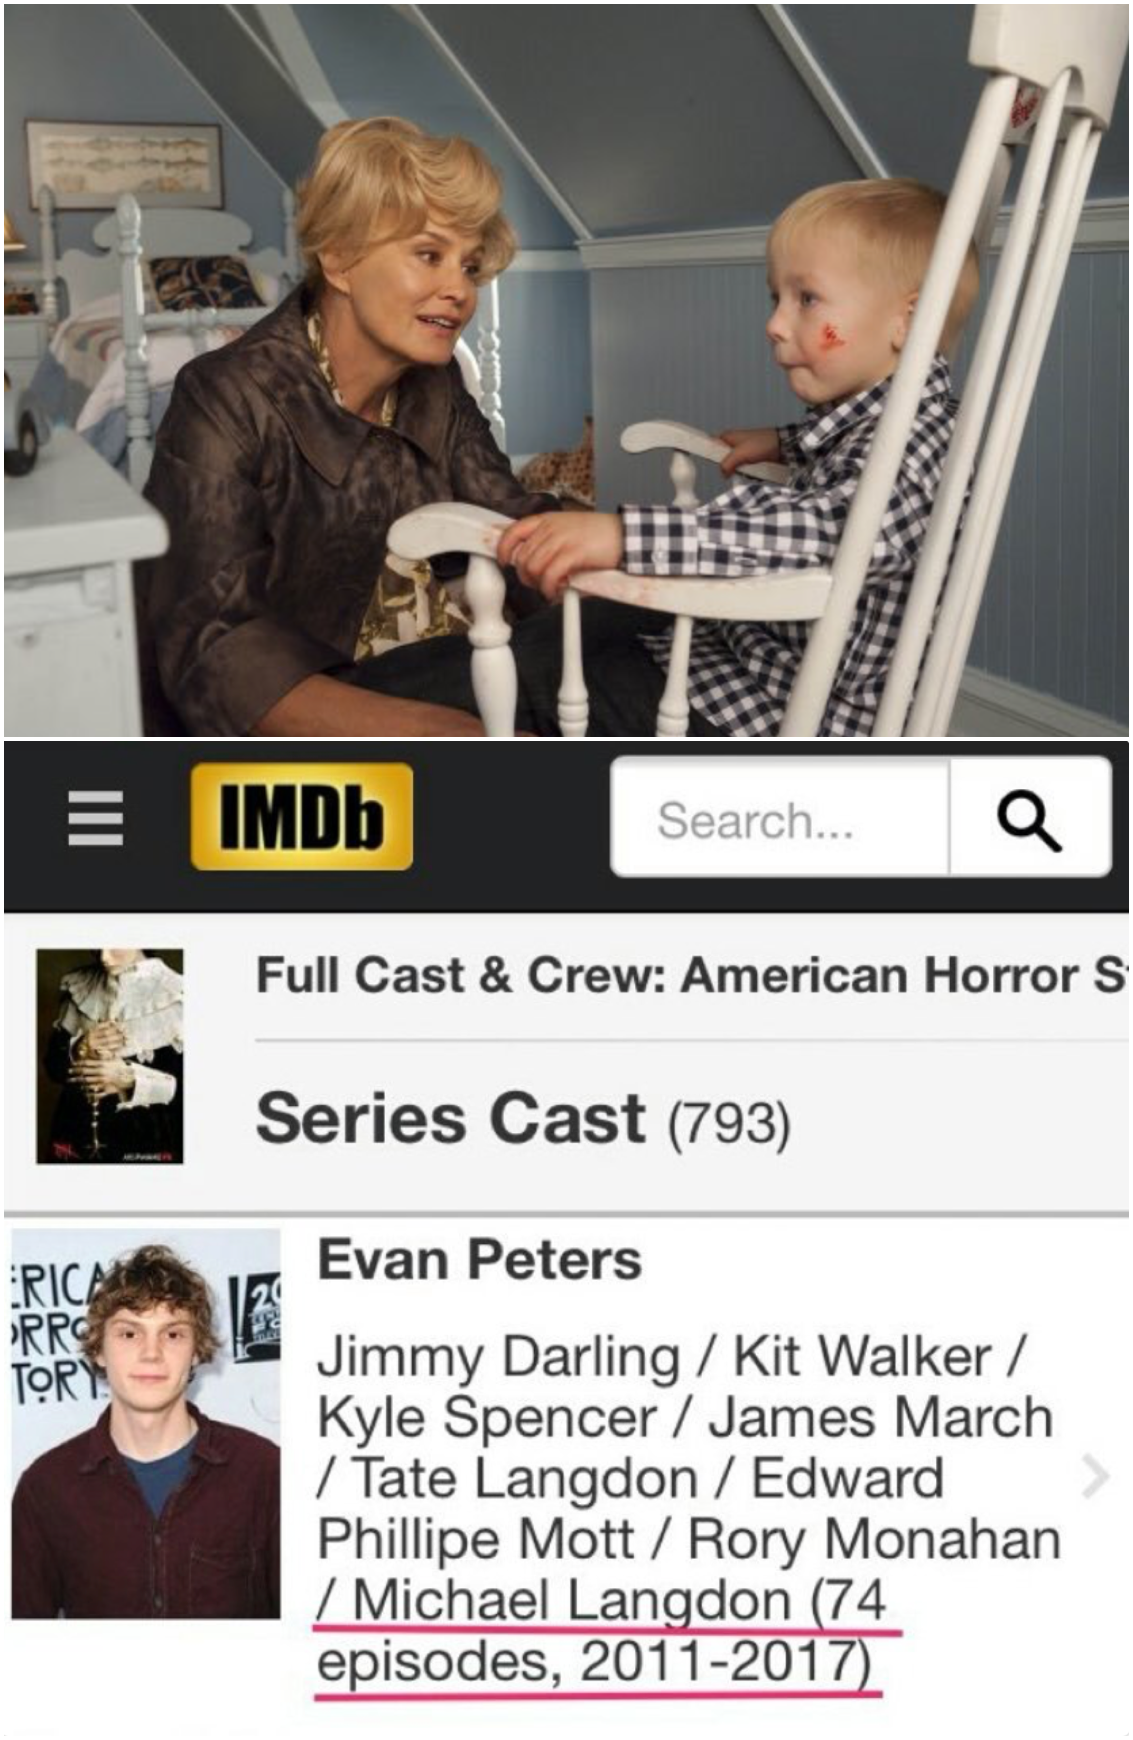 HOT RUMOR: IMDB inadvertently revealed Evan Peters will be playing ...